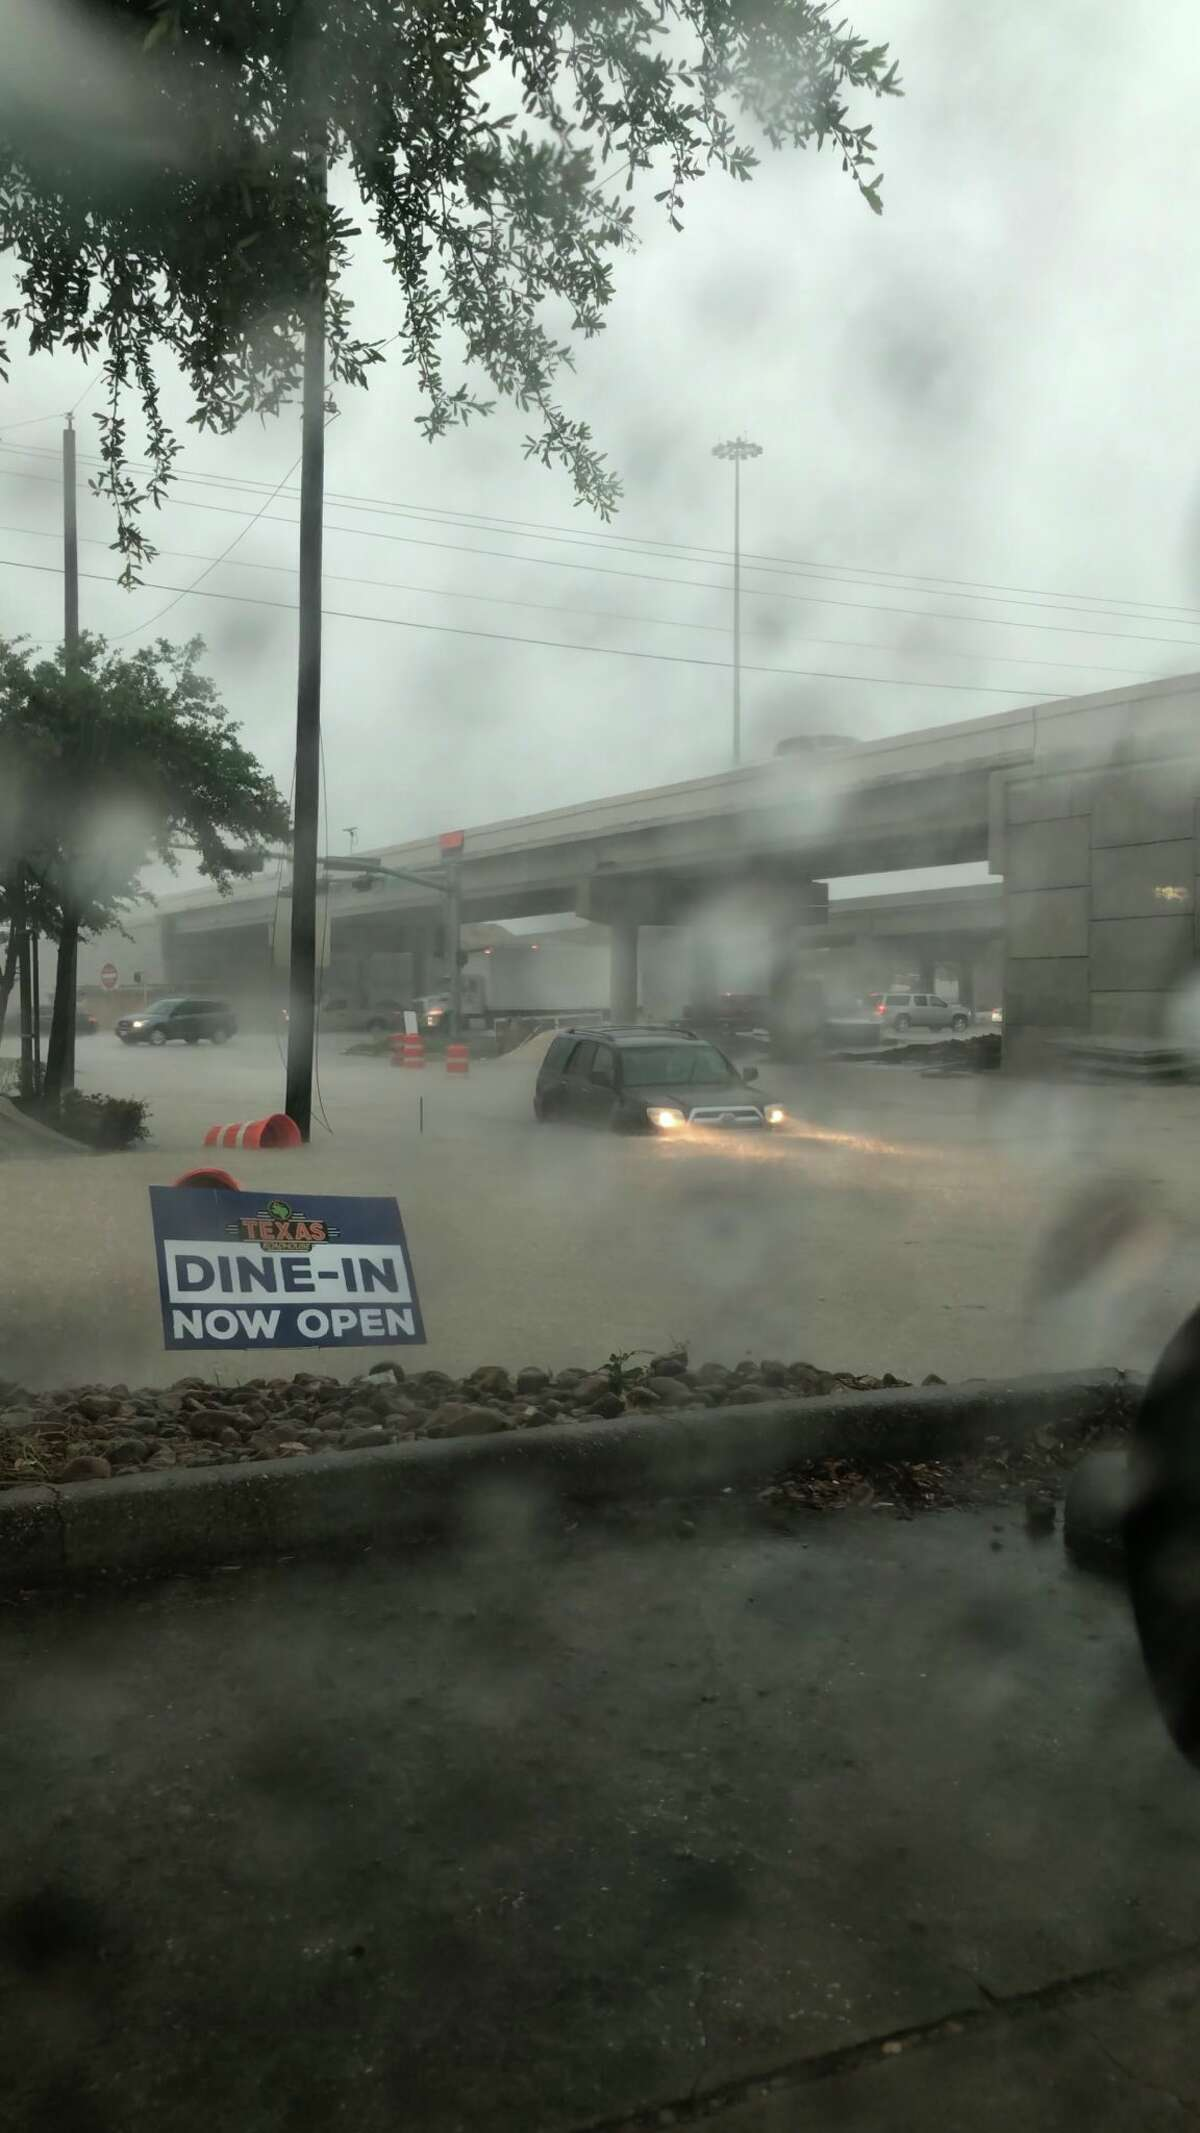 Flooding on May 15 on a Houston highway. Photo: Manny_Frescon/@immannypatino on Twitter